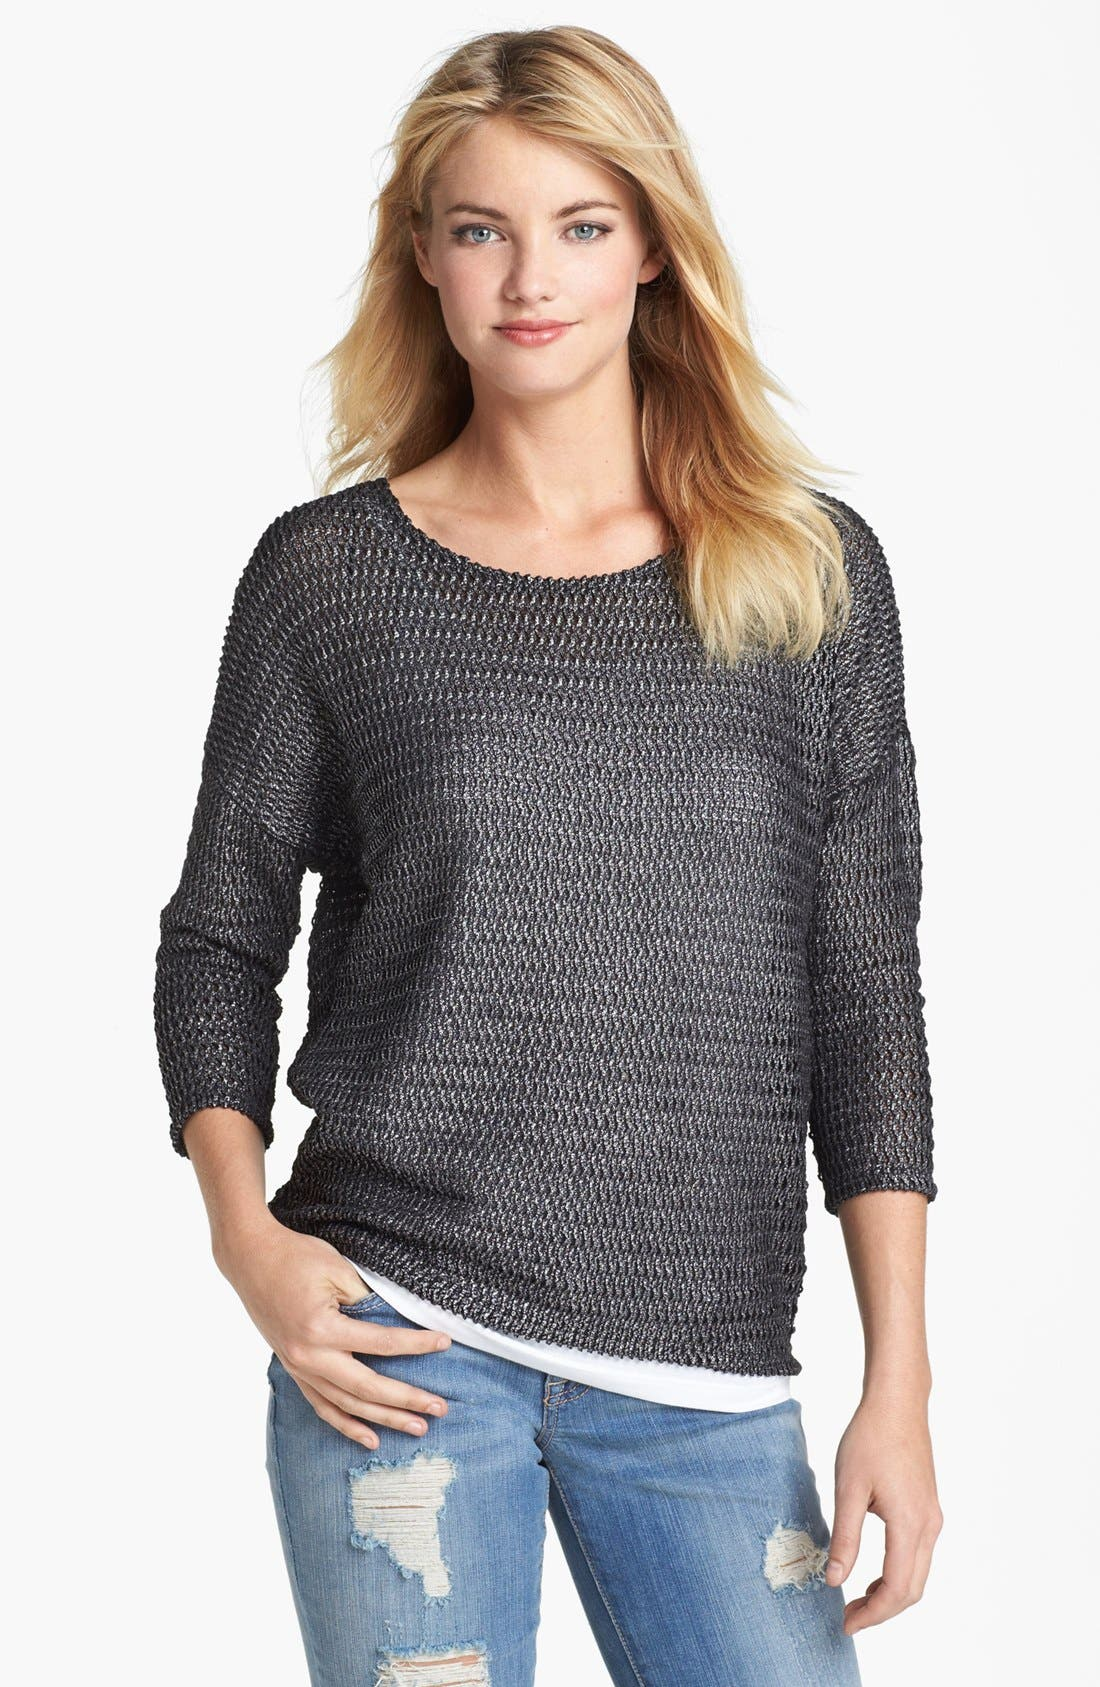 Alternate Image 1 Selected - Two by Vince Camuto Metallic Open Knit Sweater